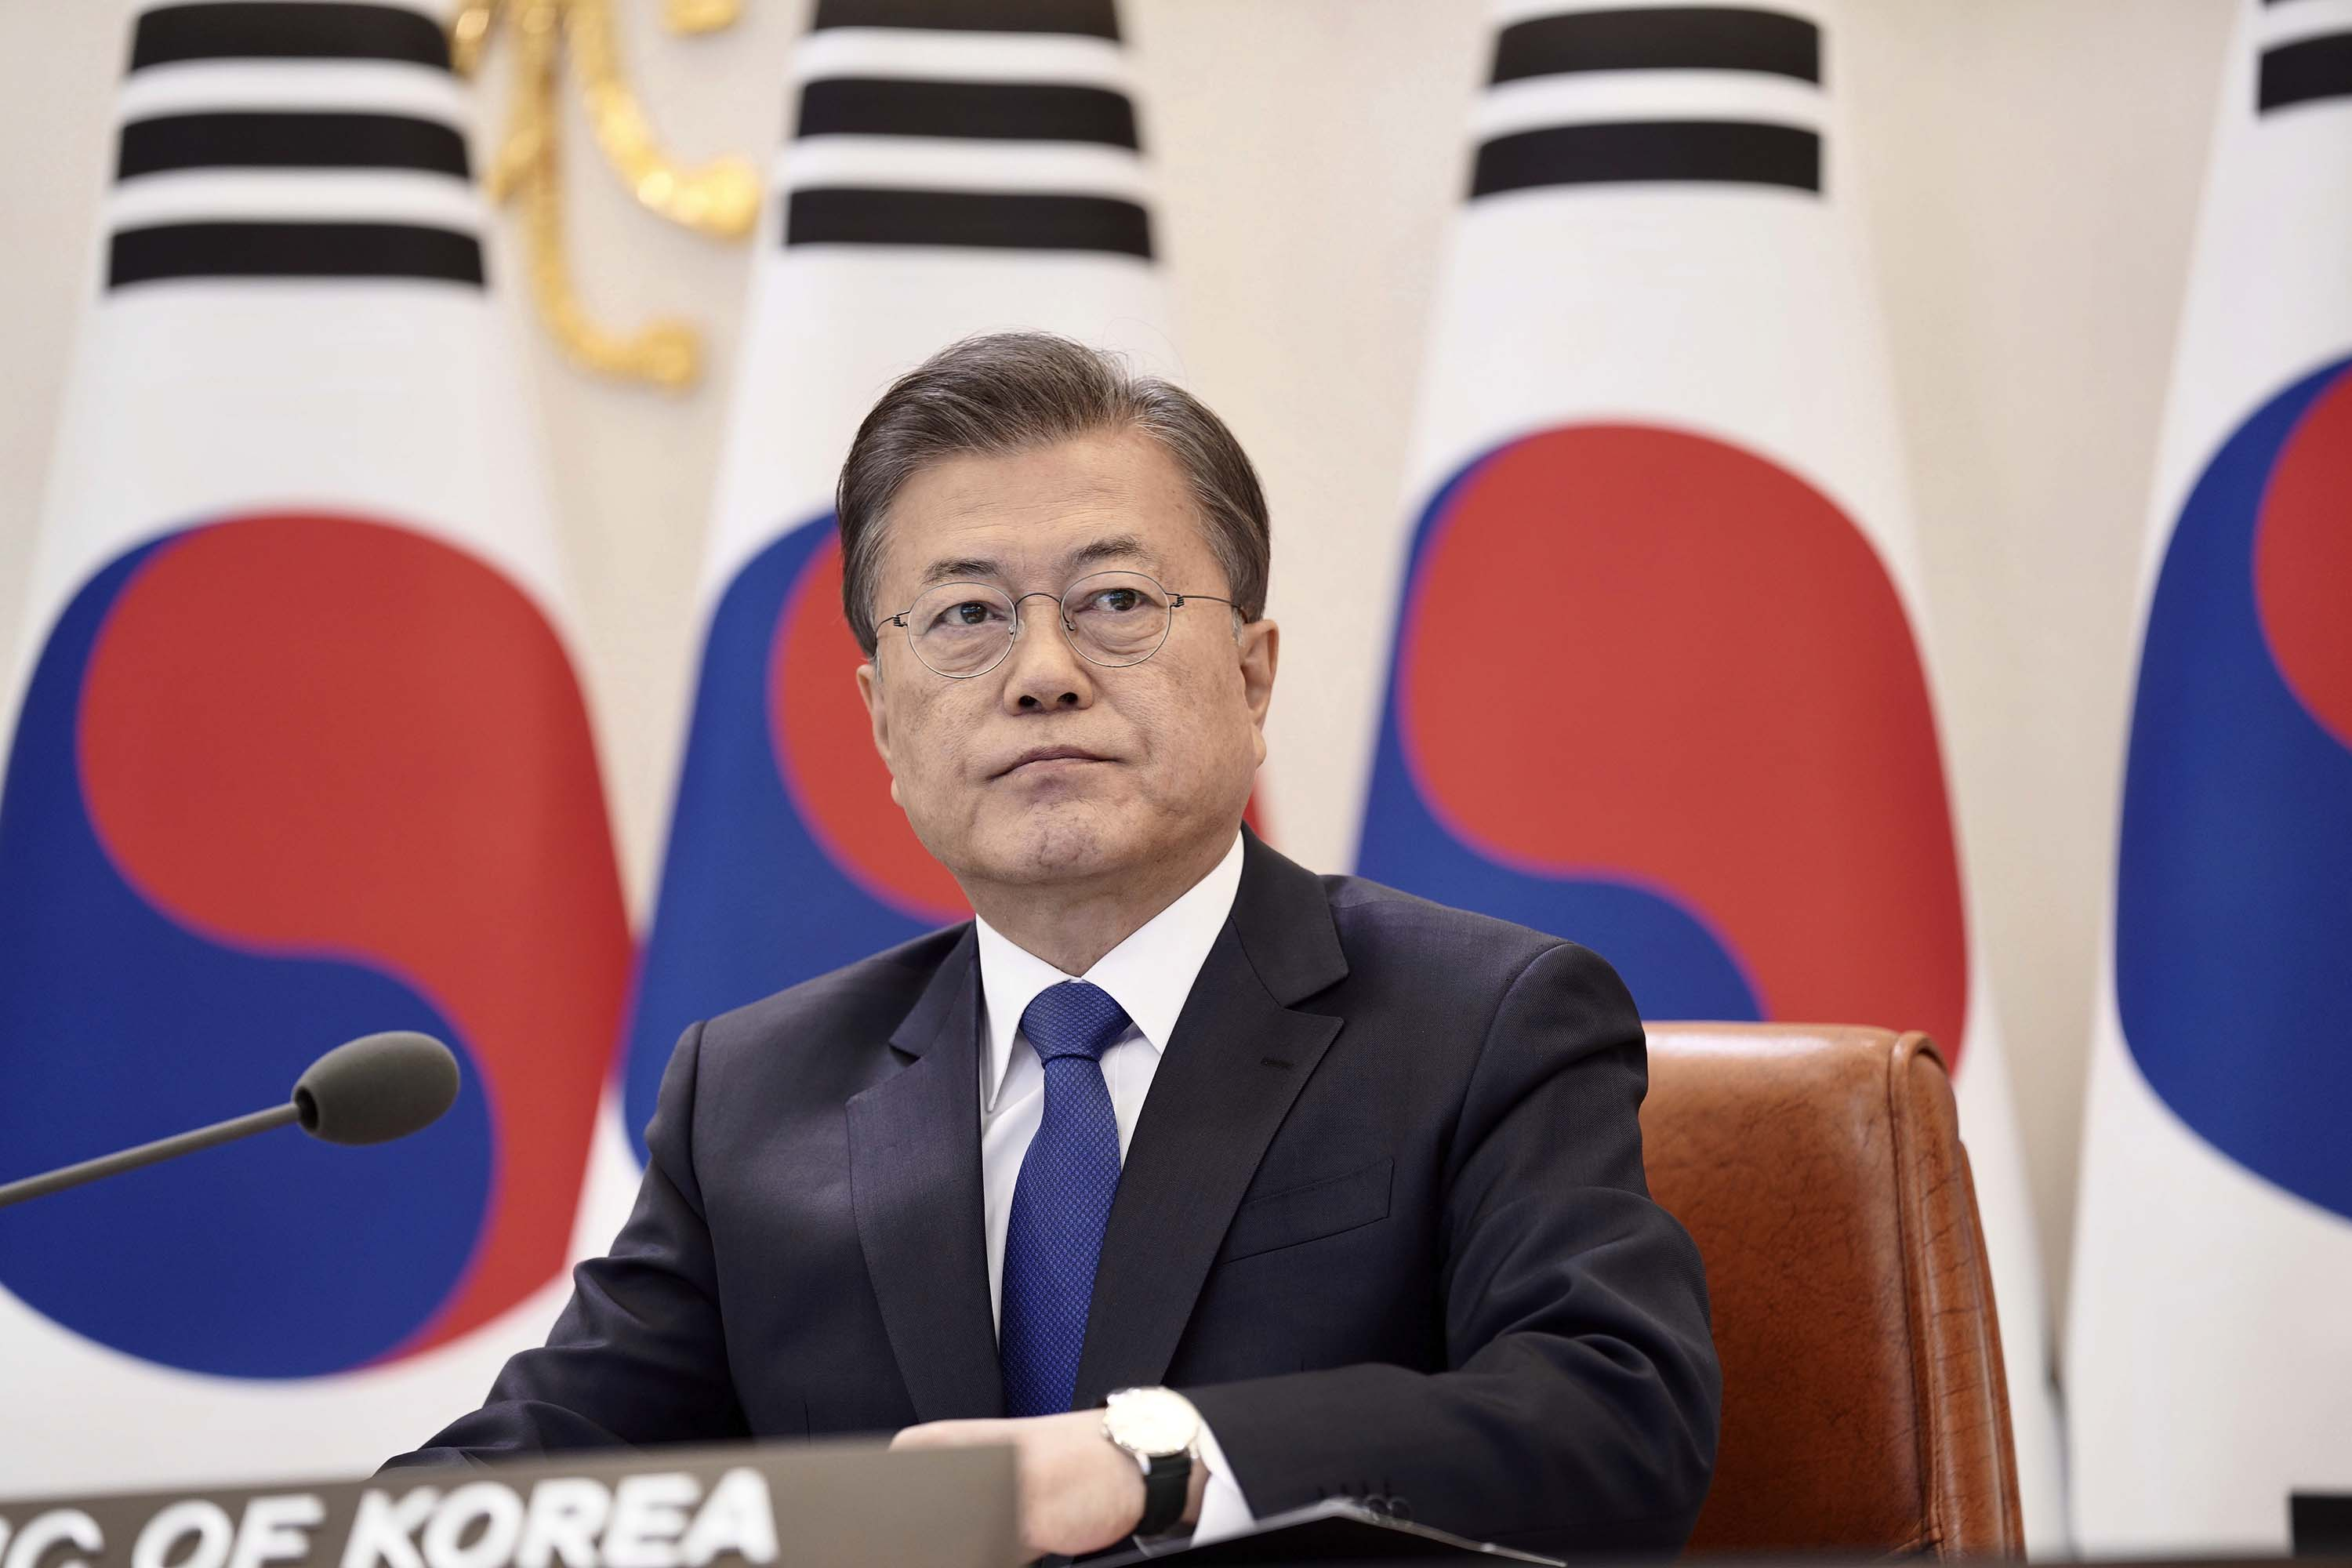 South Korean President Moon Jae-in attends a virtual summit at the presidential Blue House in Seoul, South Korea, on April 14.